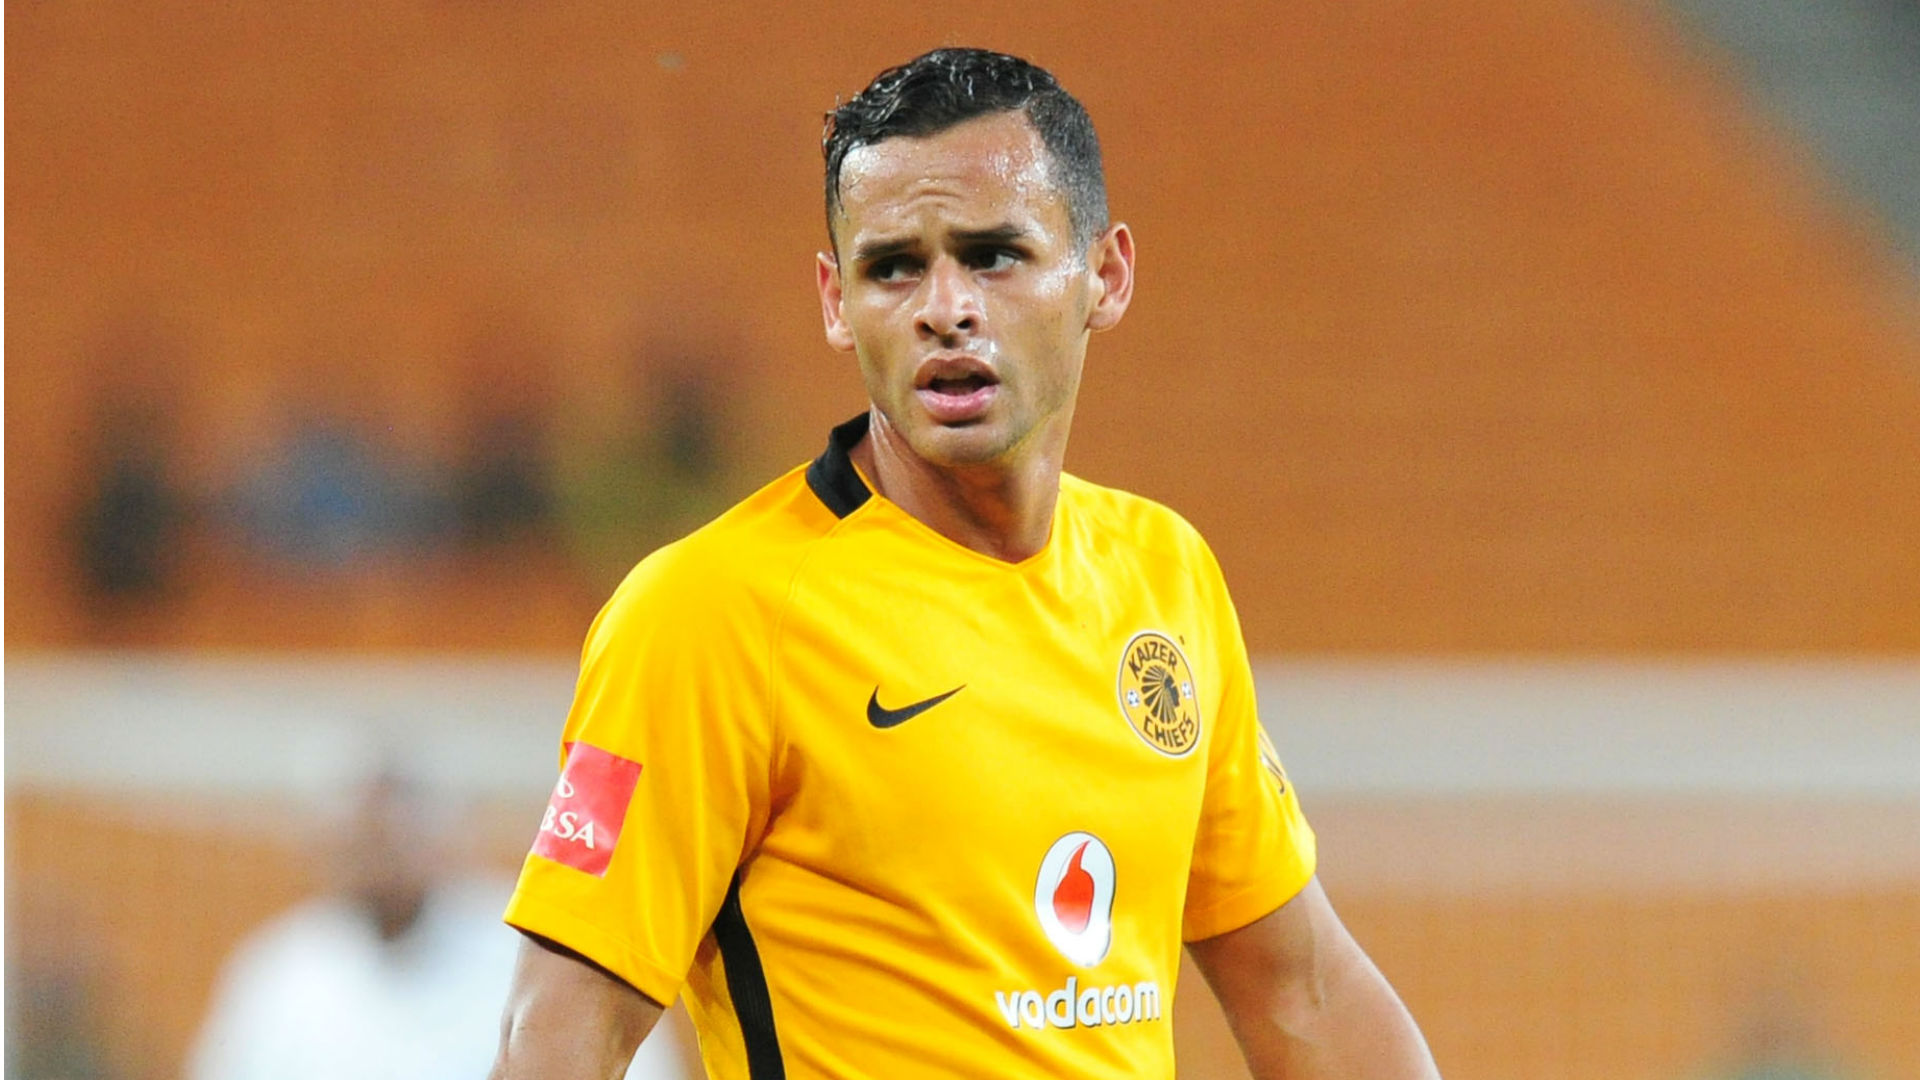 Kaizer Chiefs: COMMENT: Who's Philippe? Is Kaizer Chiefs Giving Up On